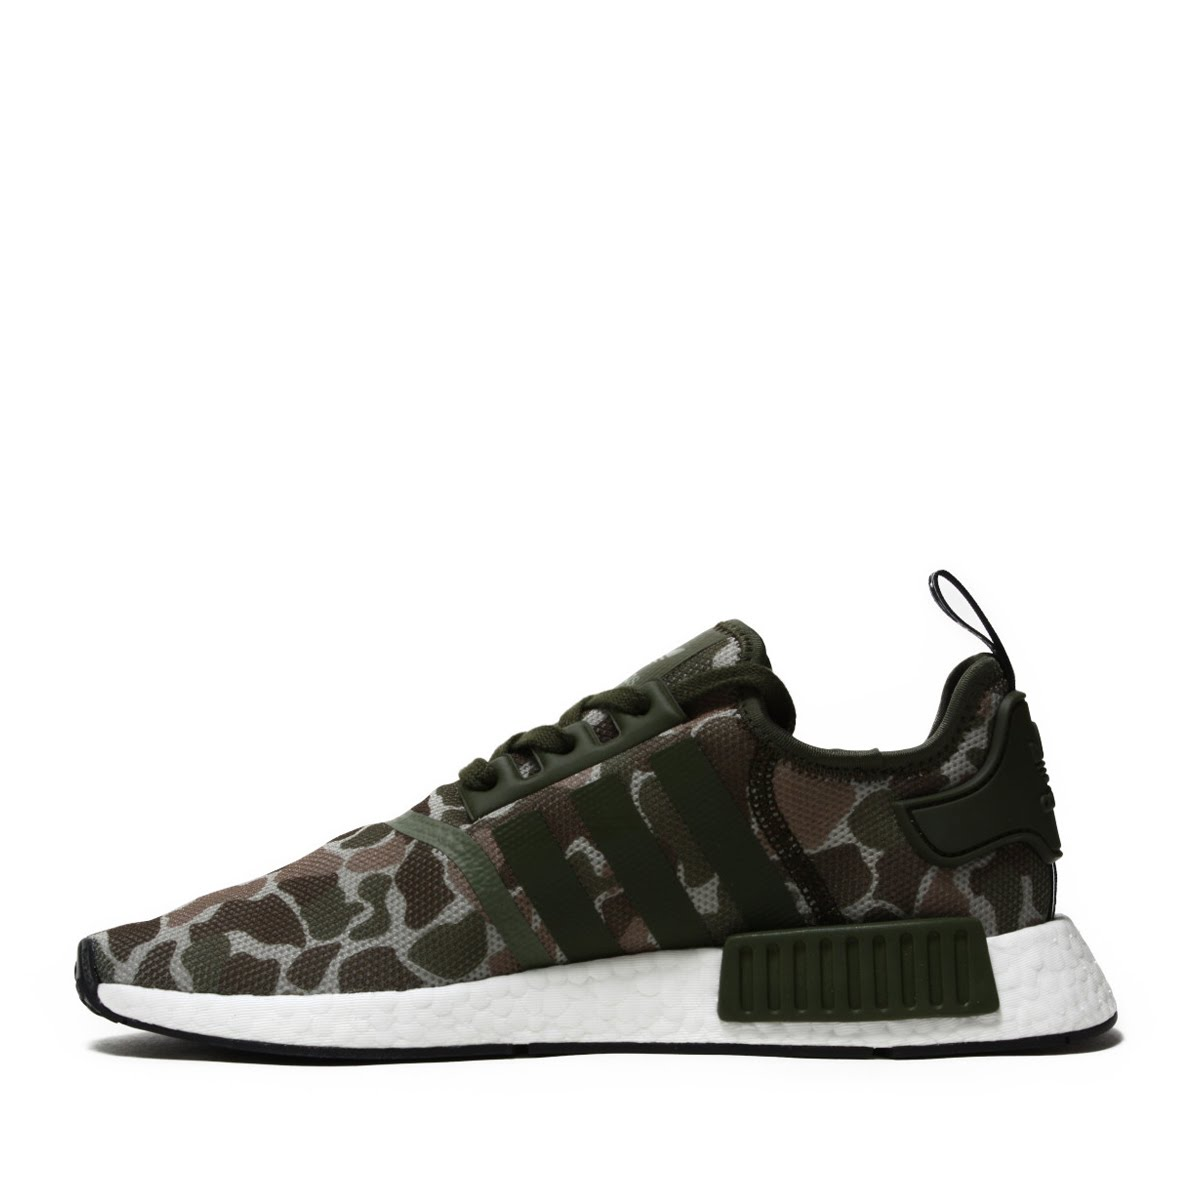 96f9bfd8a adidas NMD R1 (Adidas N M D R1) sesame   trace cargo S17  base green S15  18FW-I